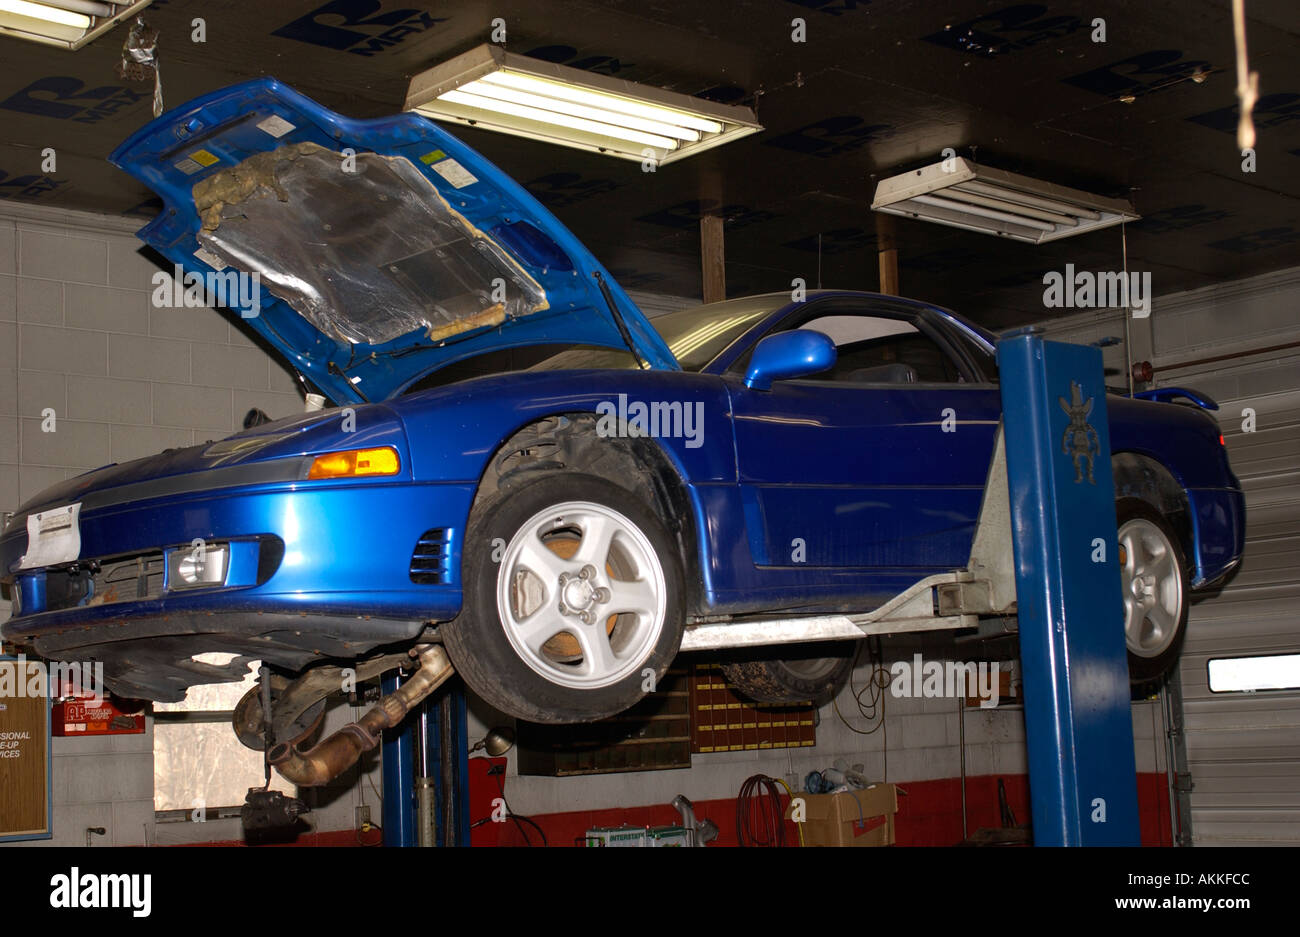 electrical mechanical auto mechanic mitsubishi repairs repair services independent